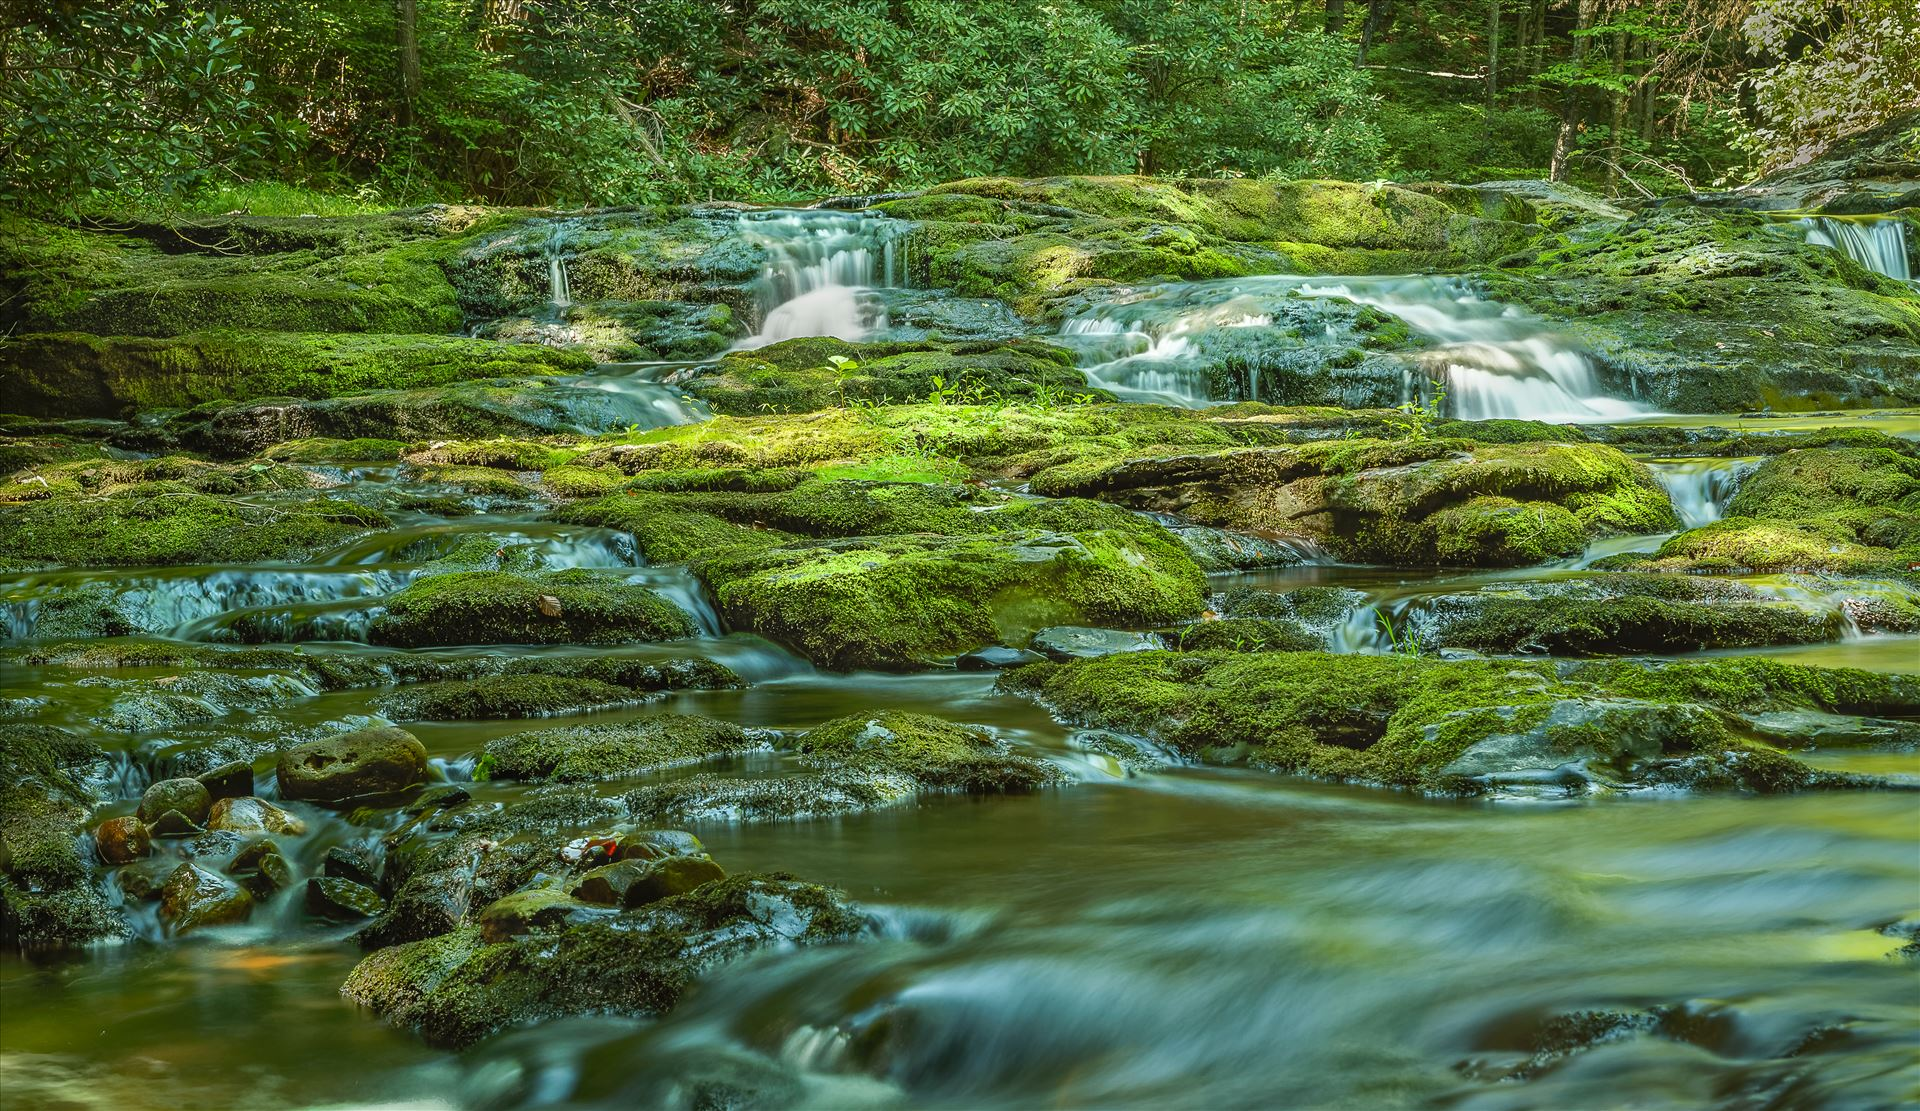 Dingmans Brook - Dingmans, Pennsylvania by Buckmaster